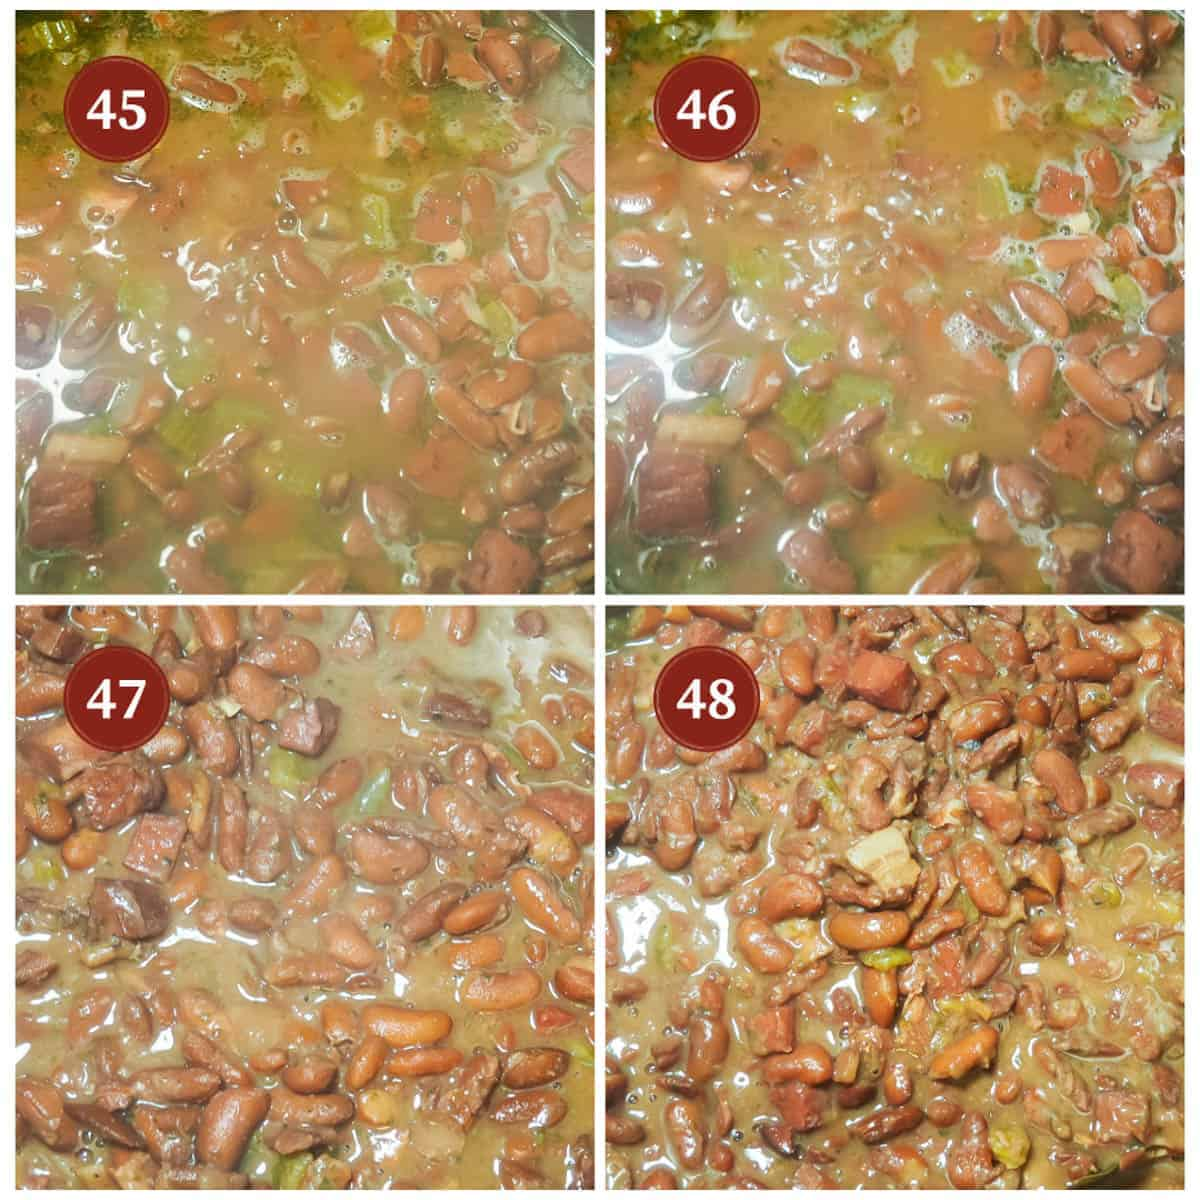 A process collage of images for making red beans, steps 45 - 48. Time lapse of the liquid cooking down.